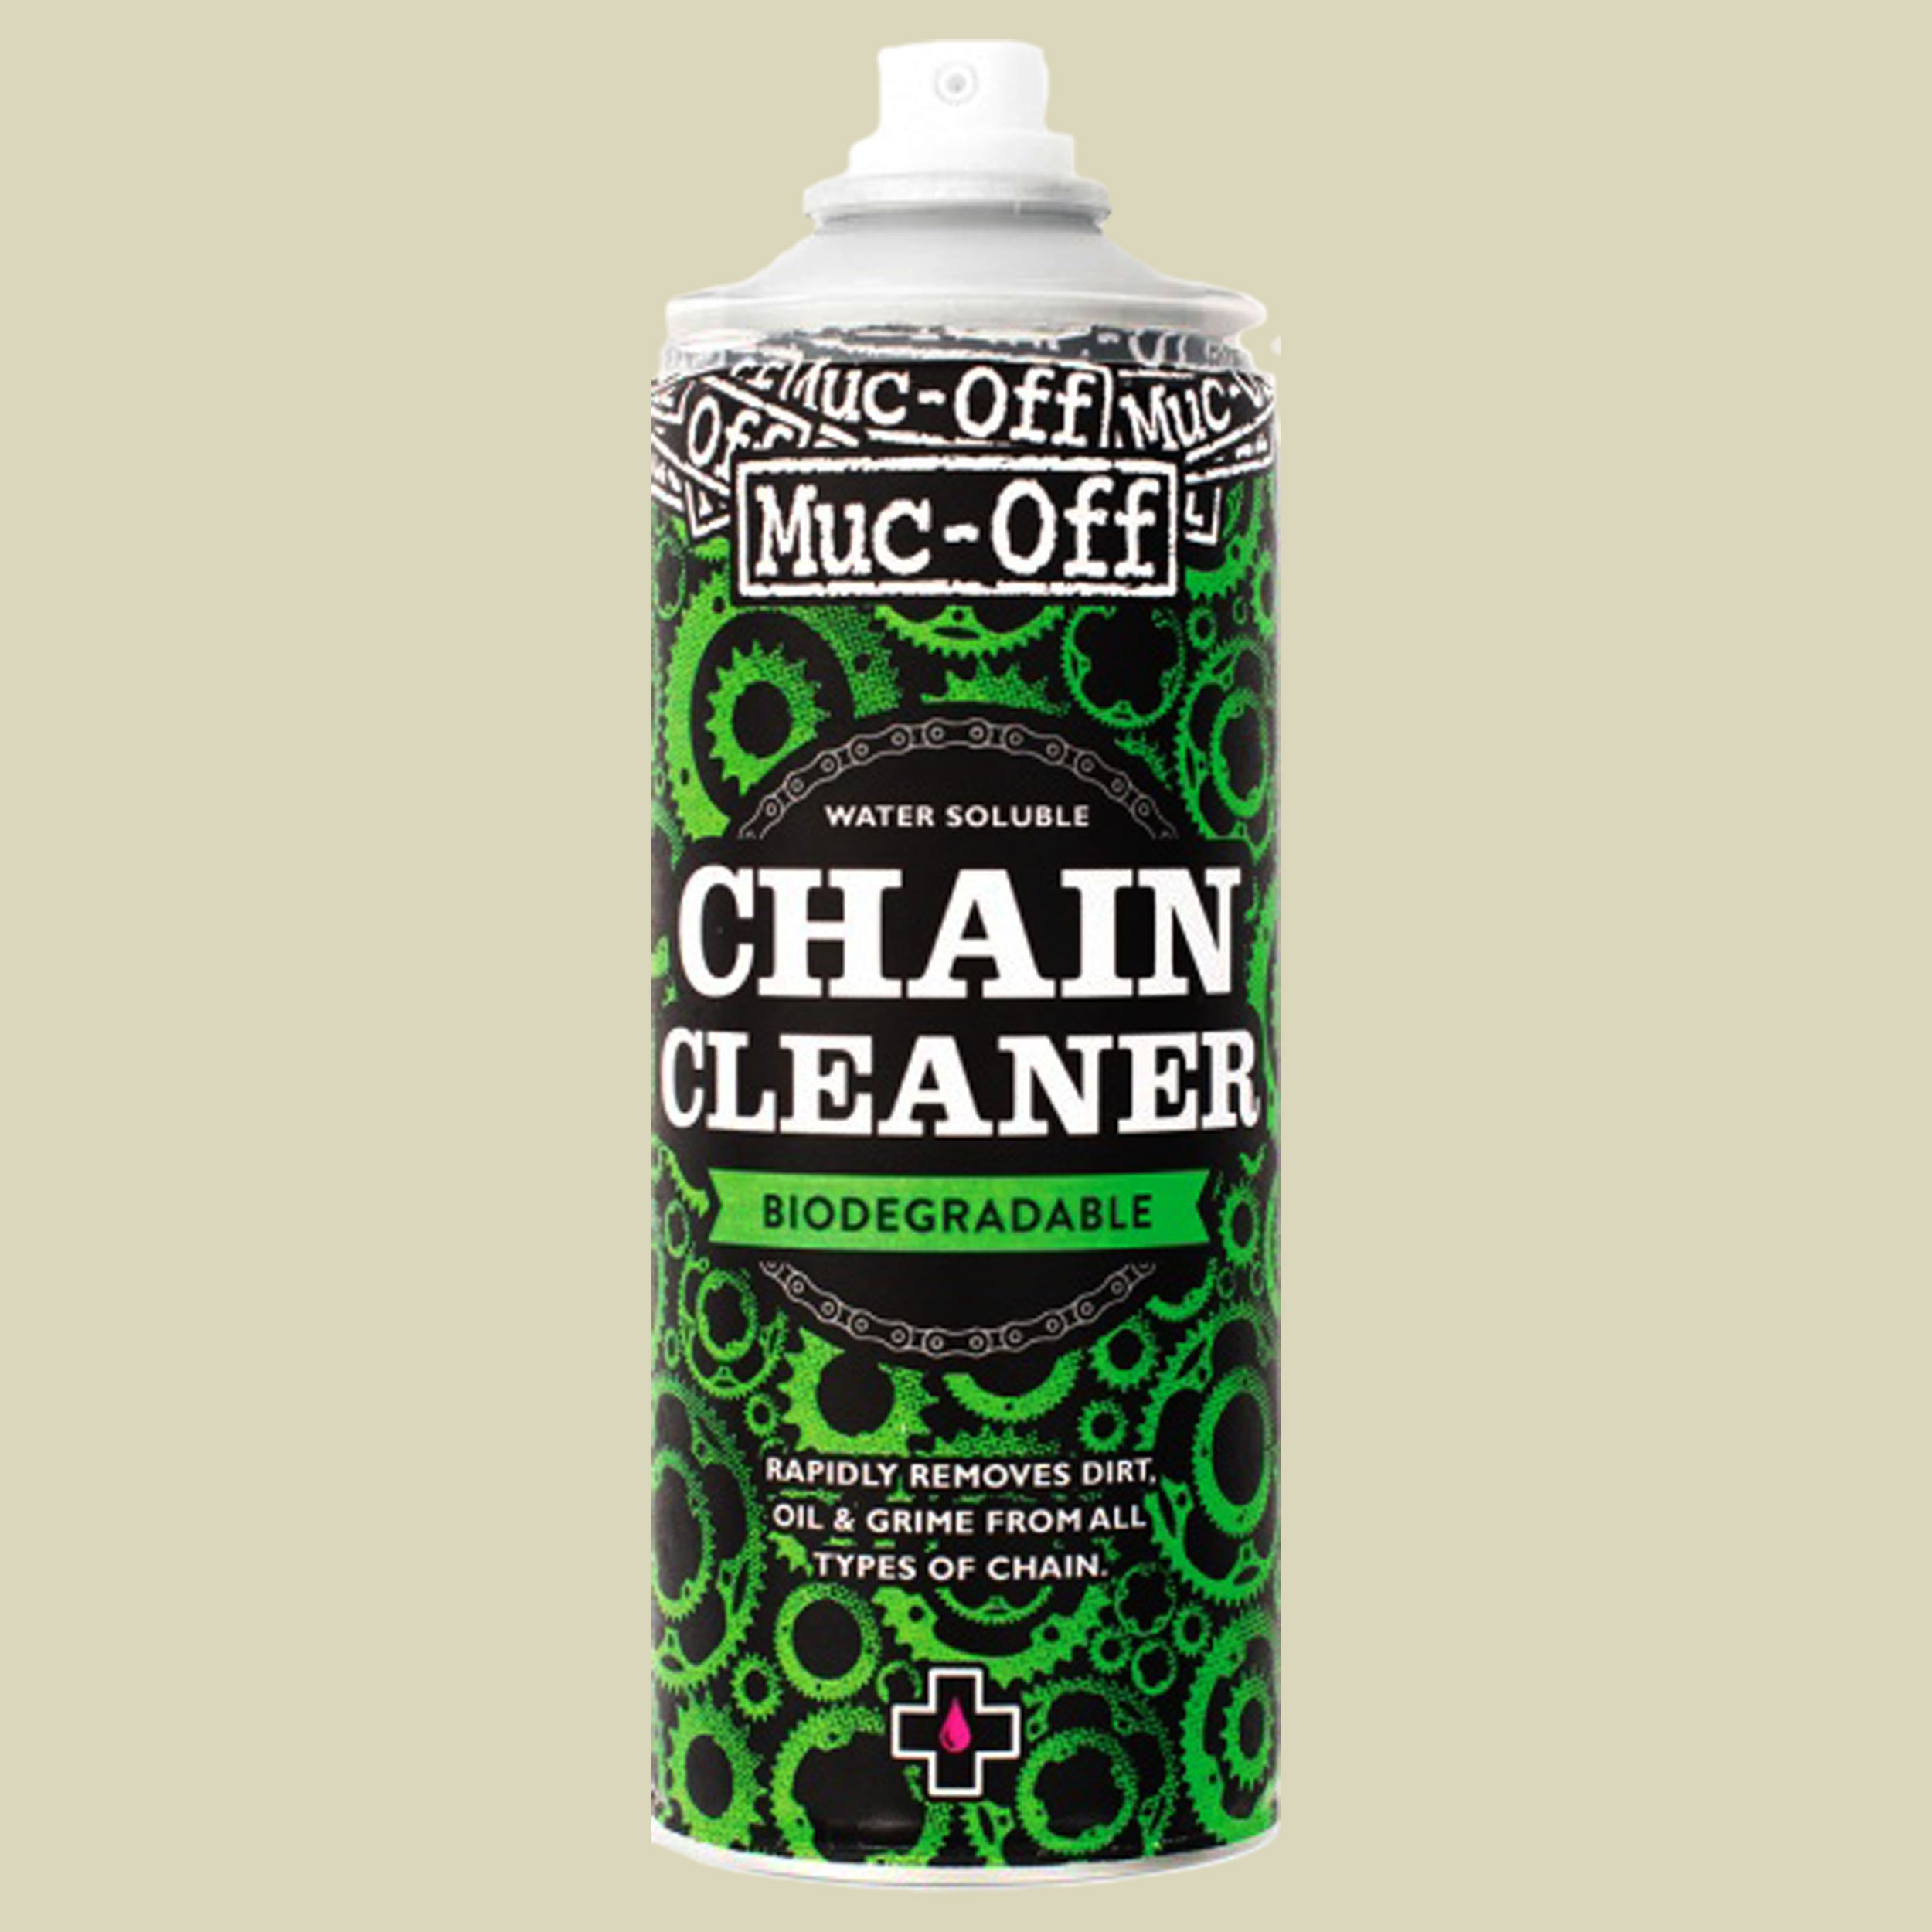 muc_off_bike_chain_cleaner_400ml_1034218__fallback